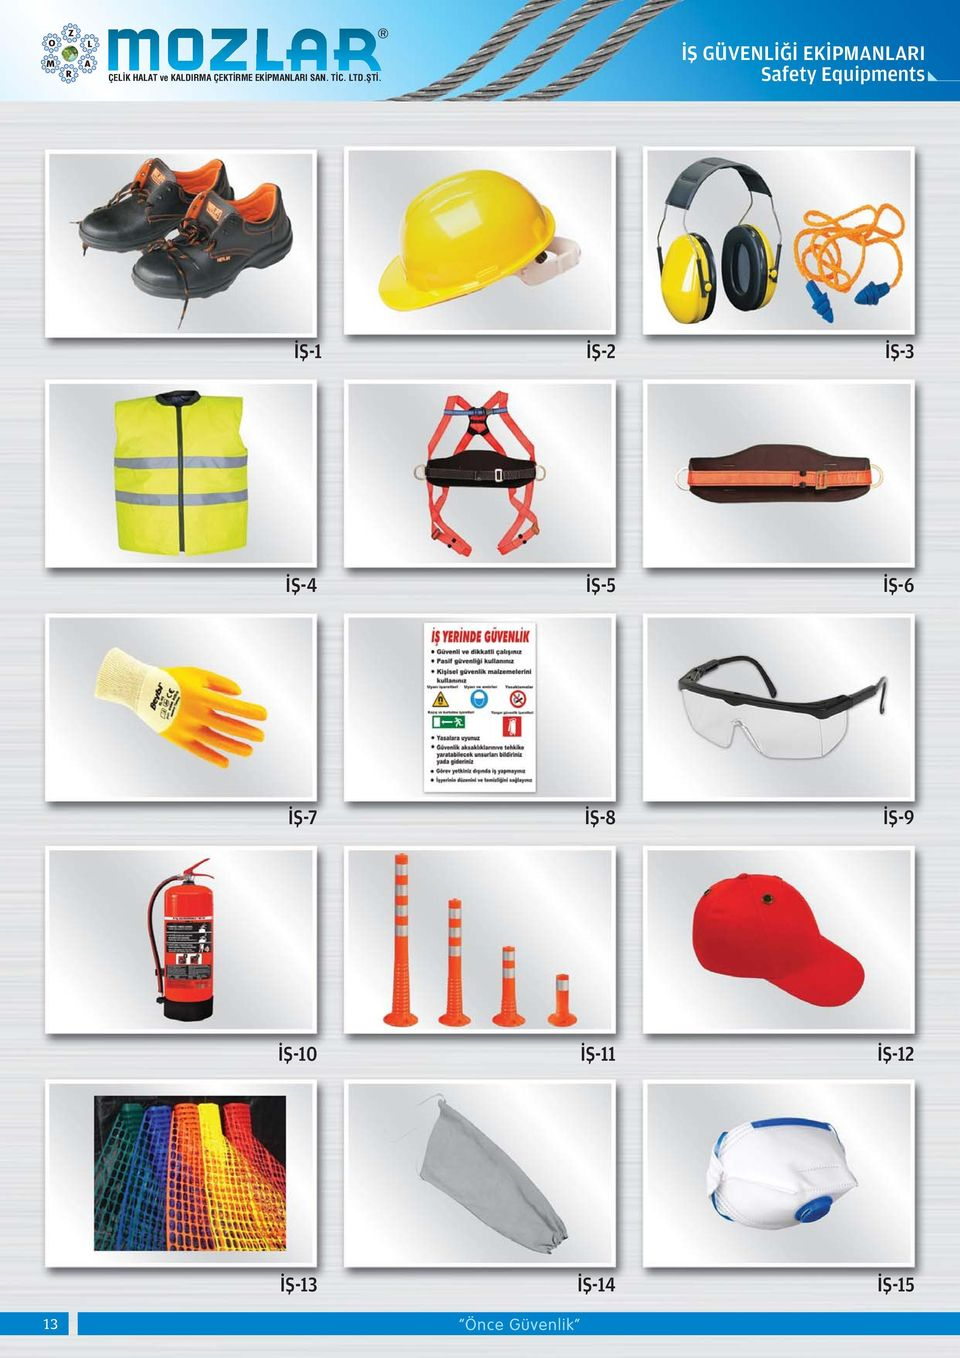 ÝÞ GÜVENLÝÐÝ EKÝPMANLARI Safety Equipments ÝÞ-1